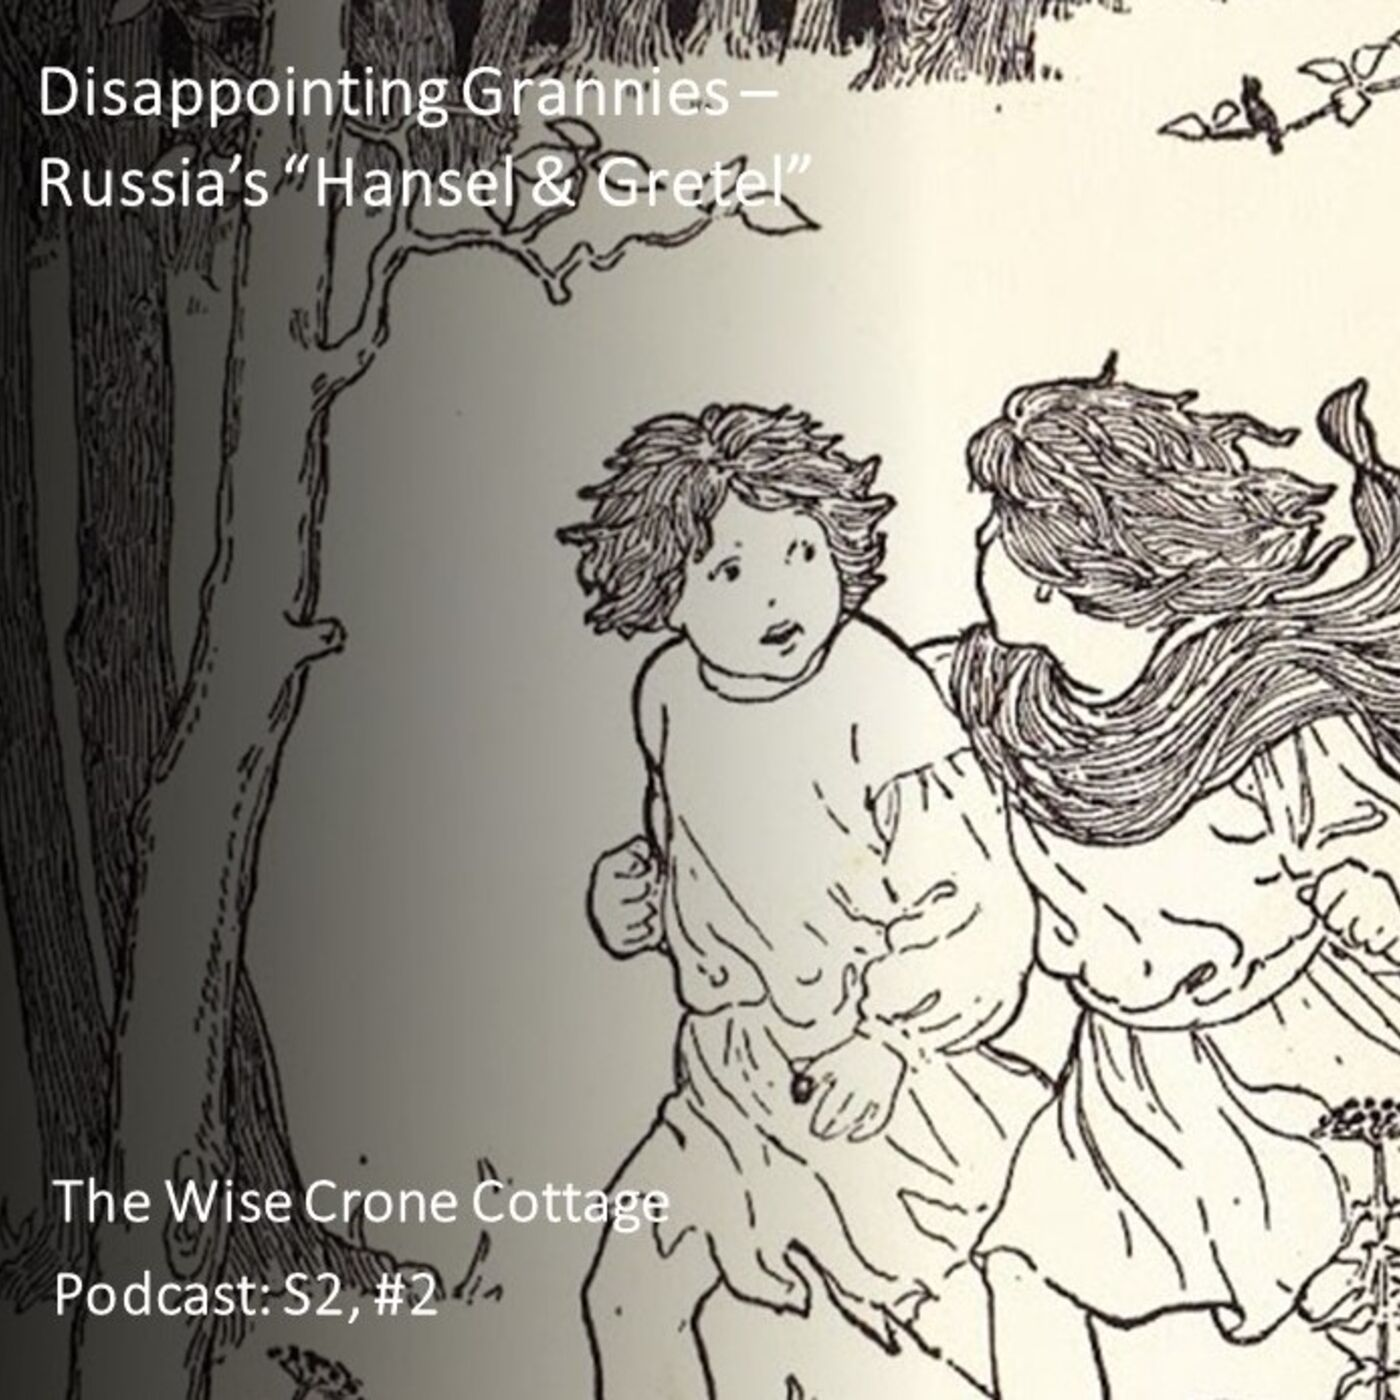 """Disappointing Grannies - Russia's """"Hansel & Gretel"""" (S2, #2)"""